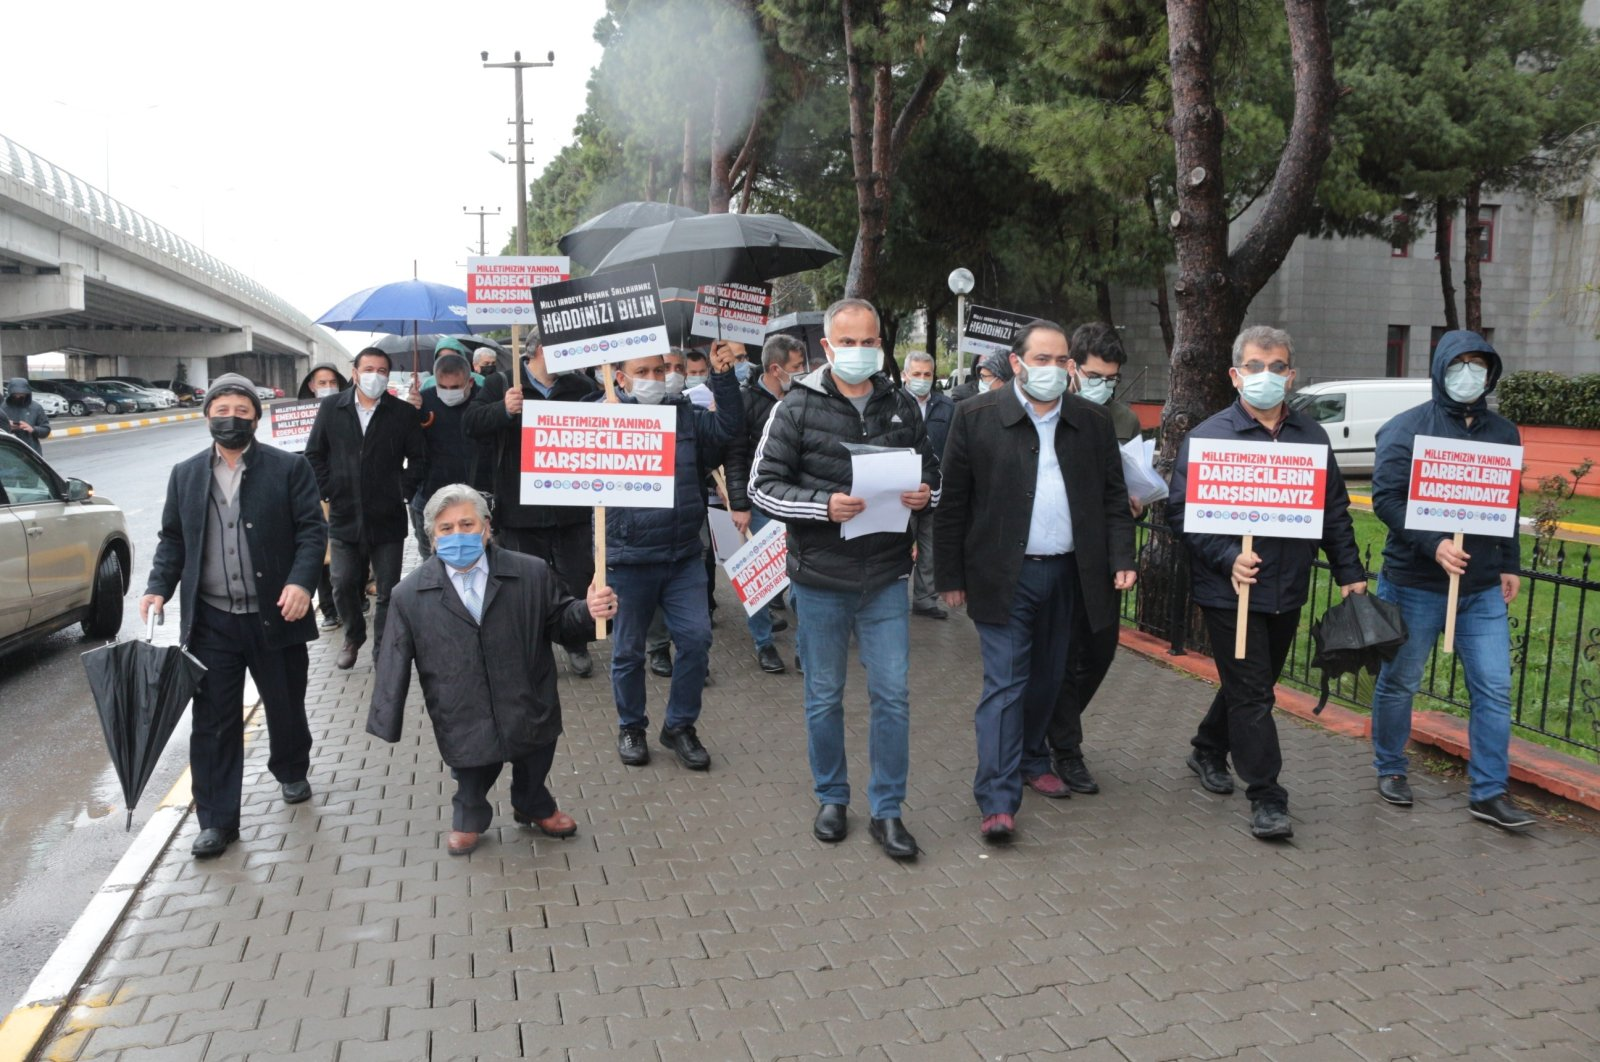 People march in protest of the declaration signed by retired admirals, western Balıkesir province, Turkey, Apr. 5, 2021. (İHA Photo)